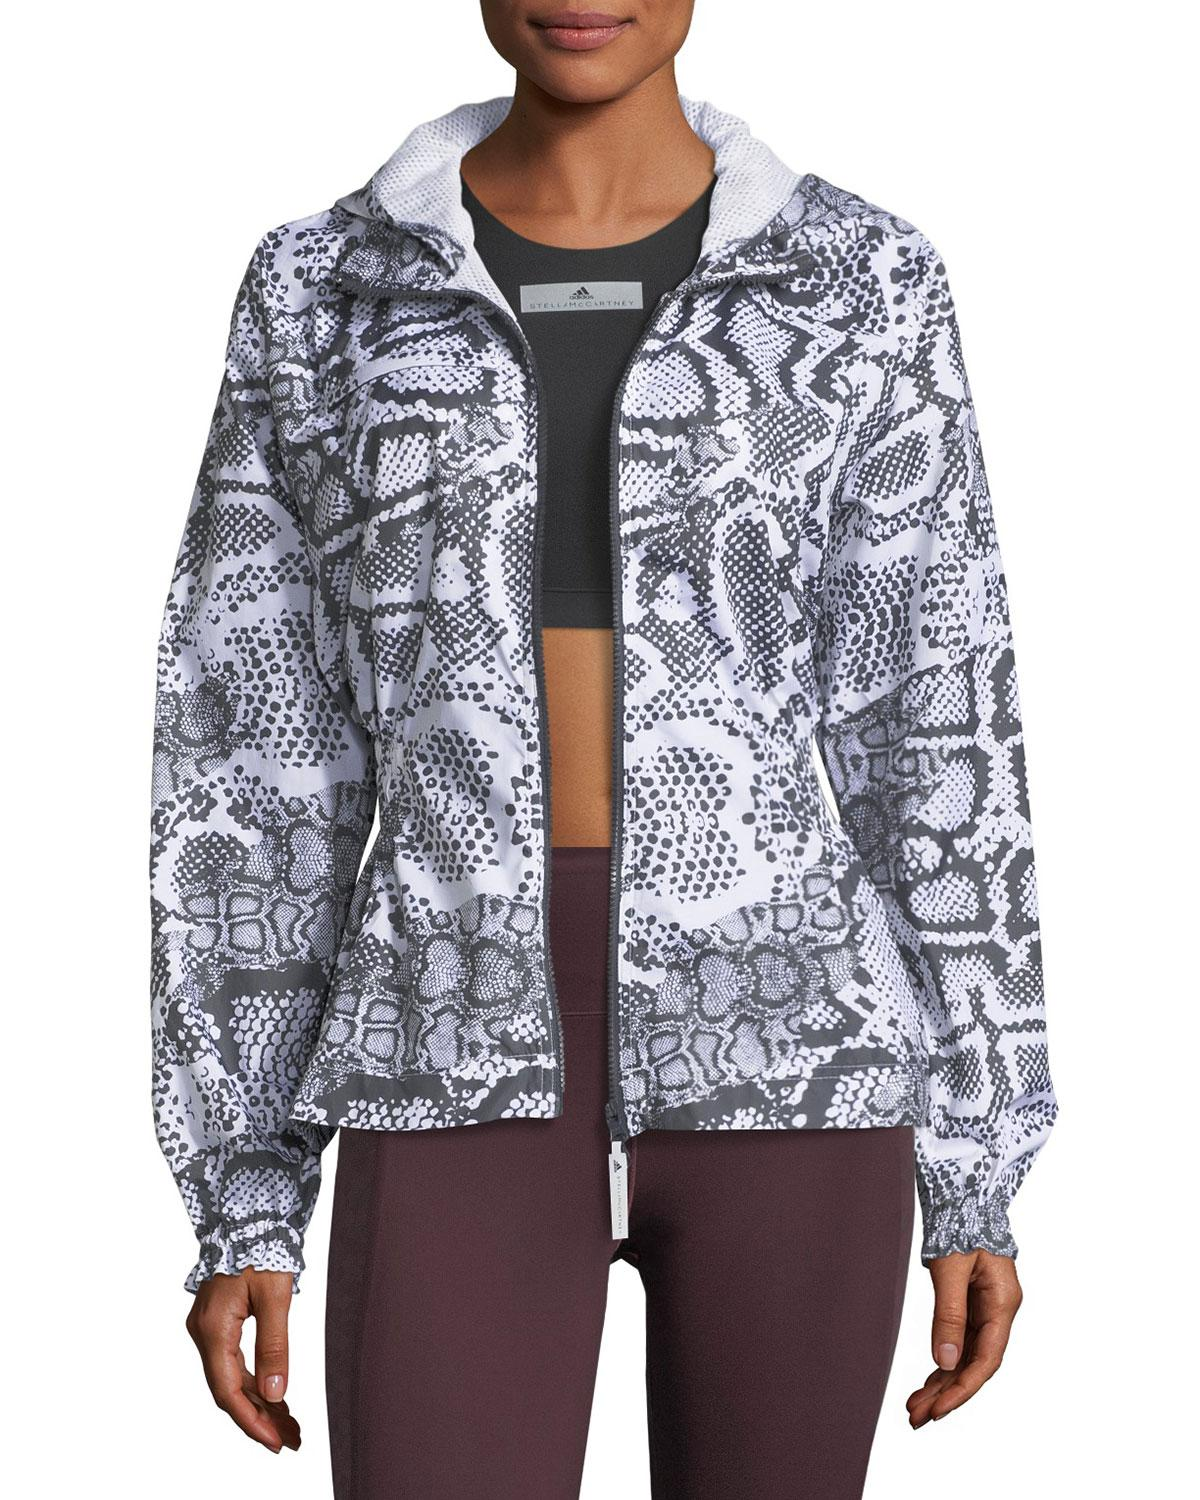 the best attitude a15b9 0fd31 Adidas by stella mccartney Run Zip-front Printed Performance Jacket in  White   Lyst